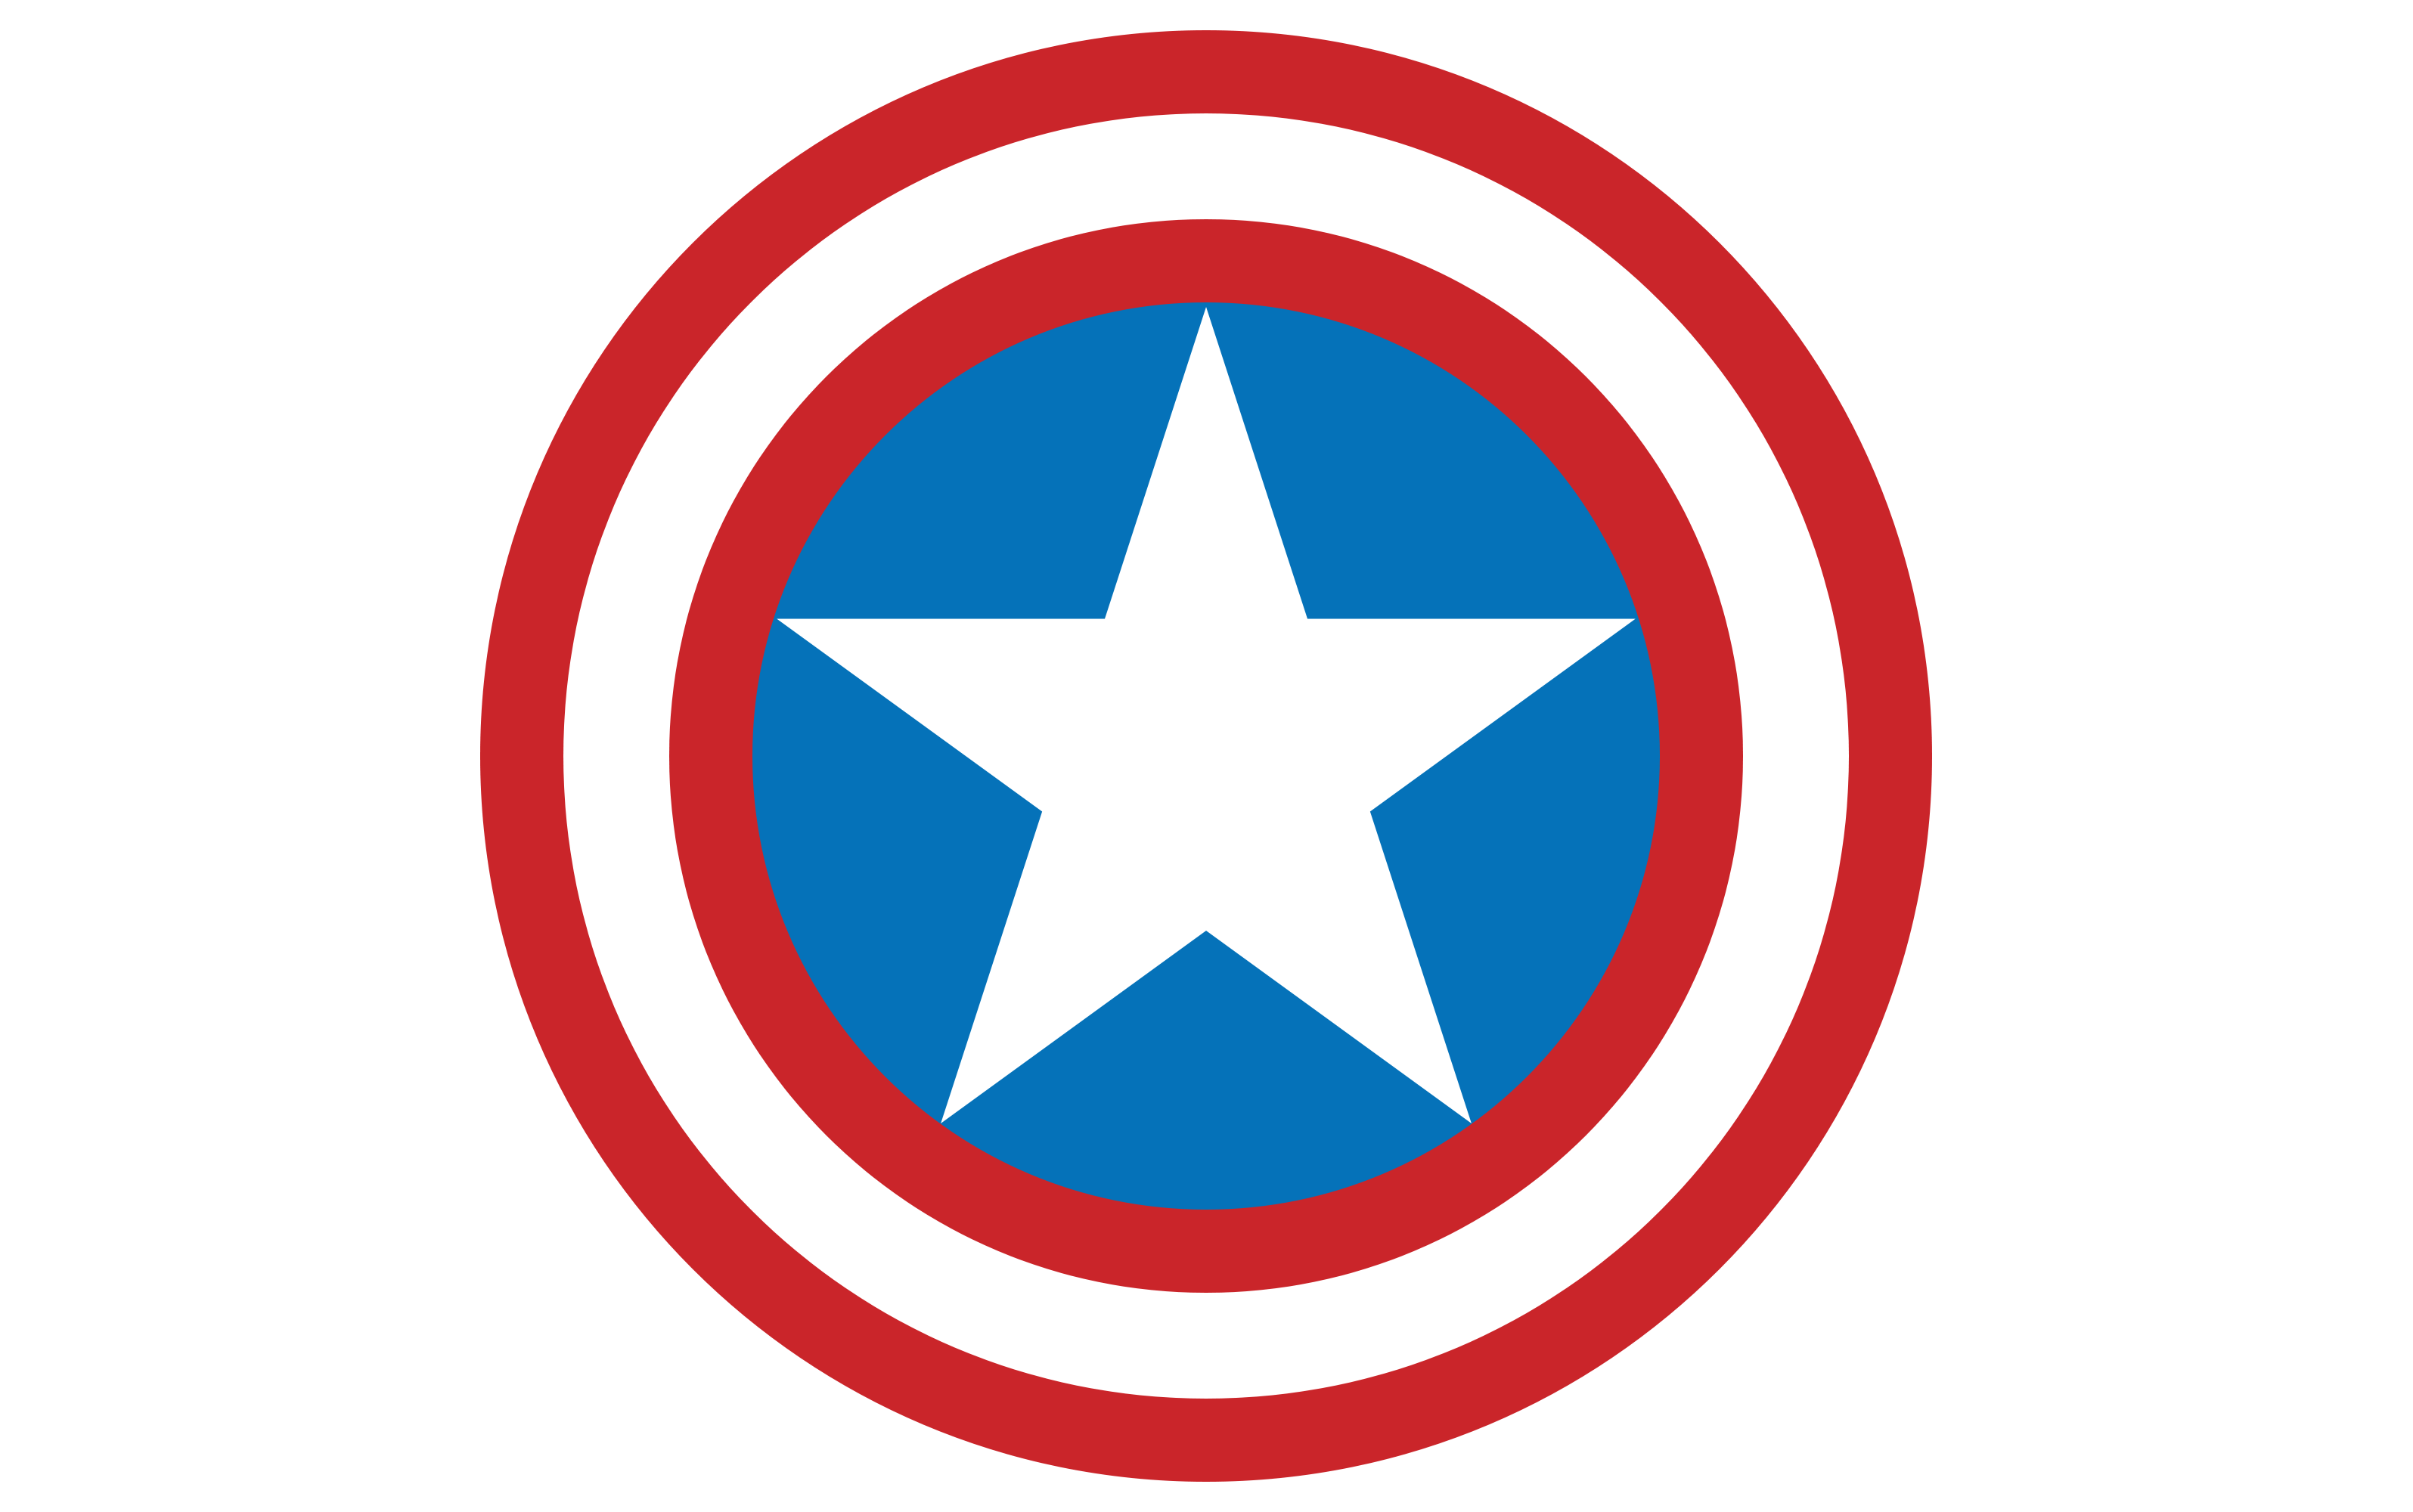 Captain america cartoon png. Shield image transparent hd